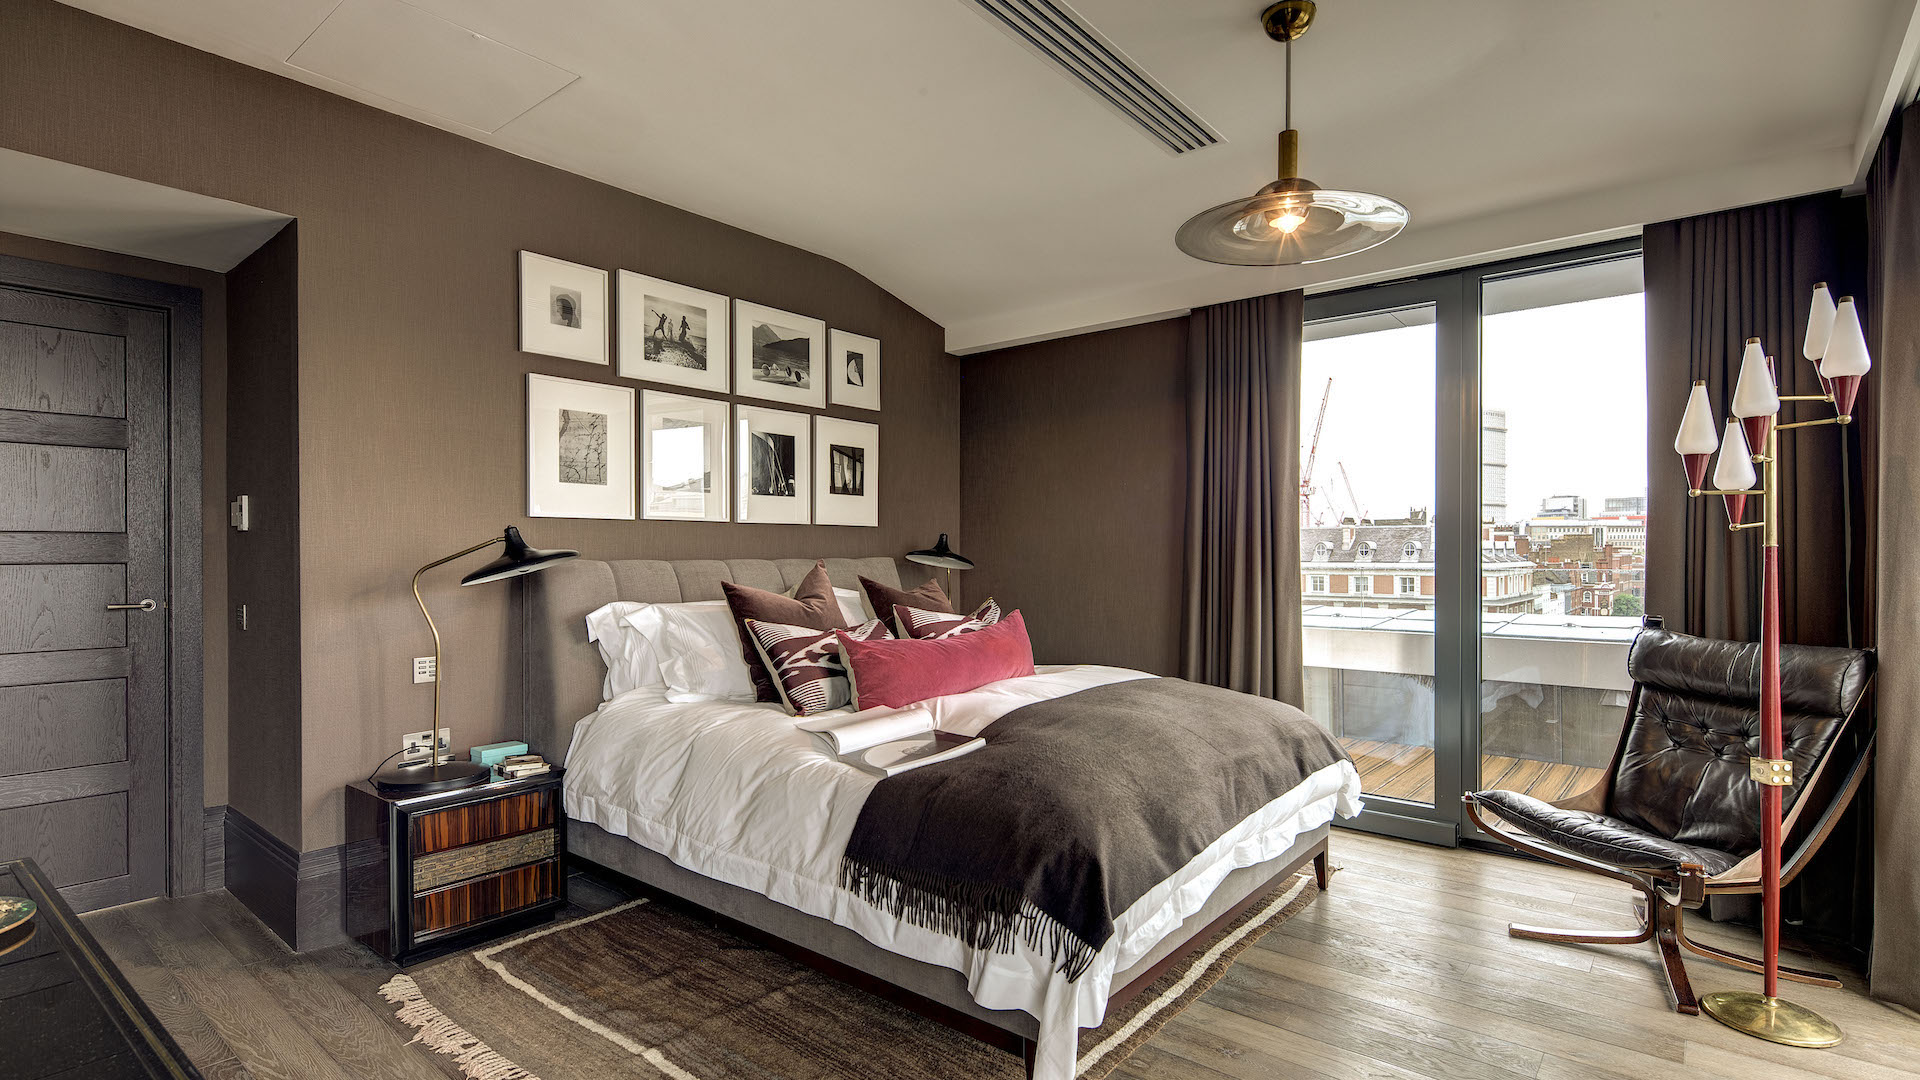 Modern bedroom with classic brown furniture in penthouse apartment in London